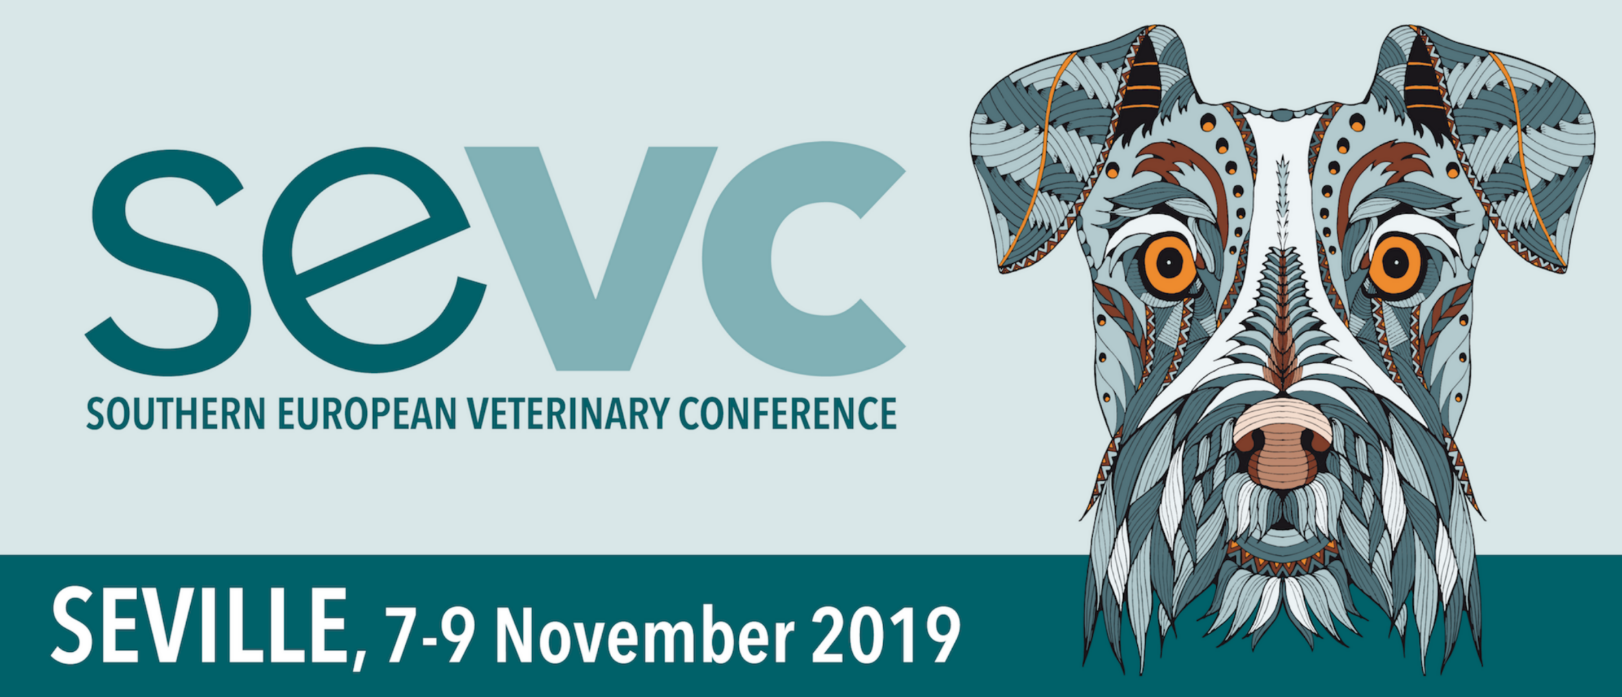 The Southern European Veterinarian Conference - SEVC